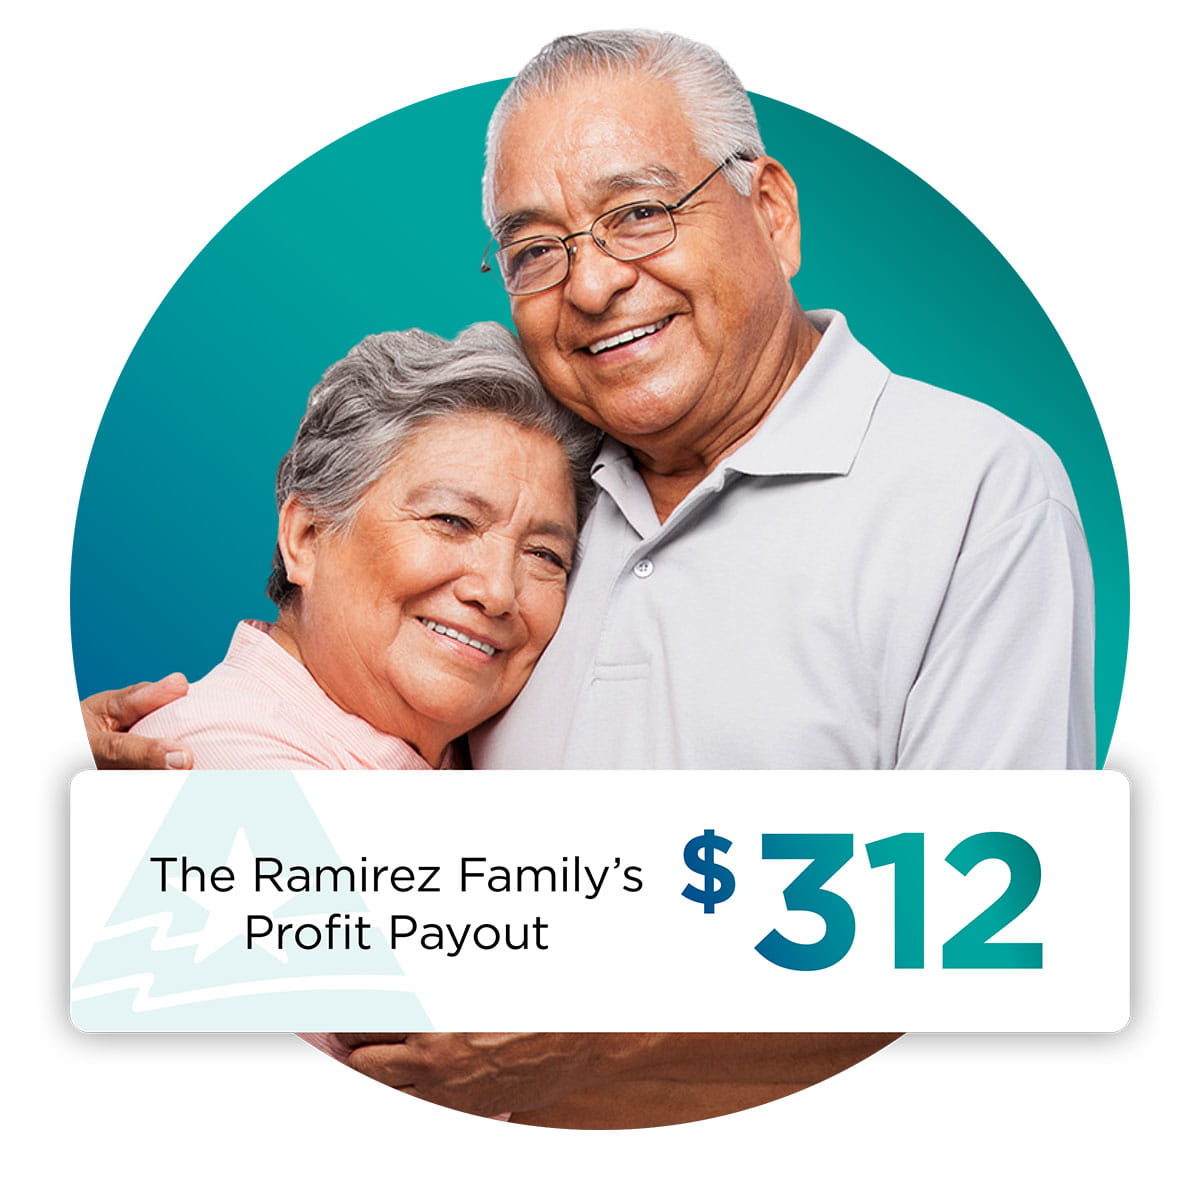 Photo of the Ramirez Family and their $312 Profit Payout